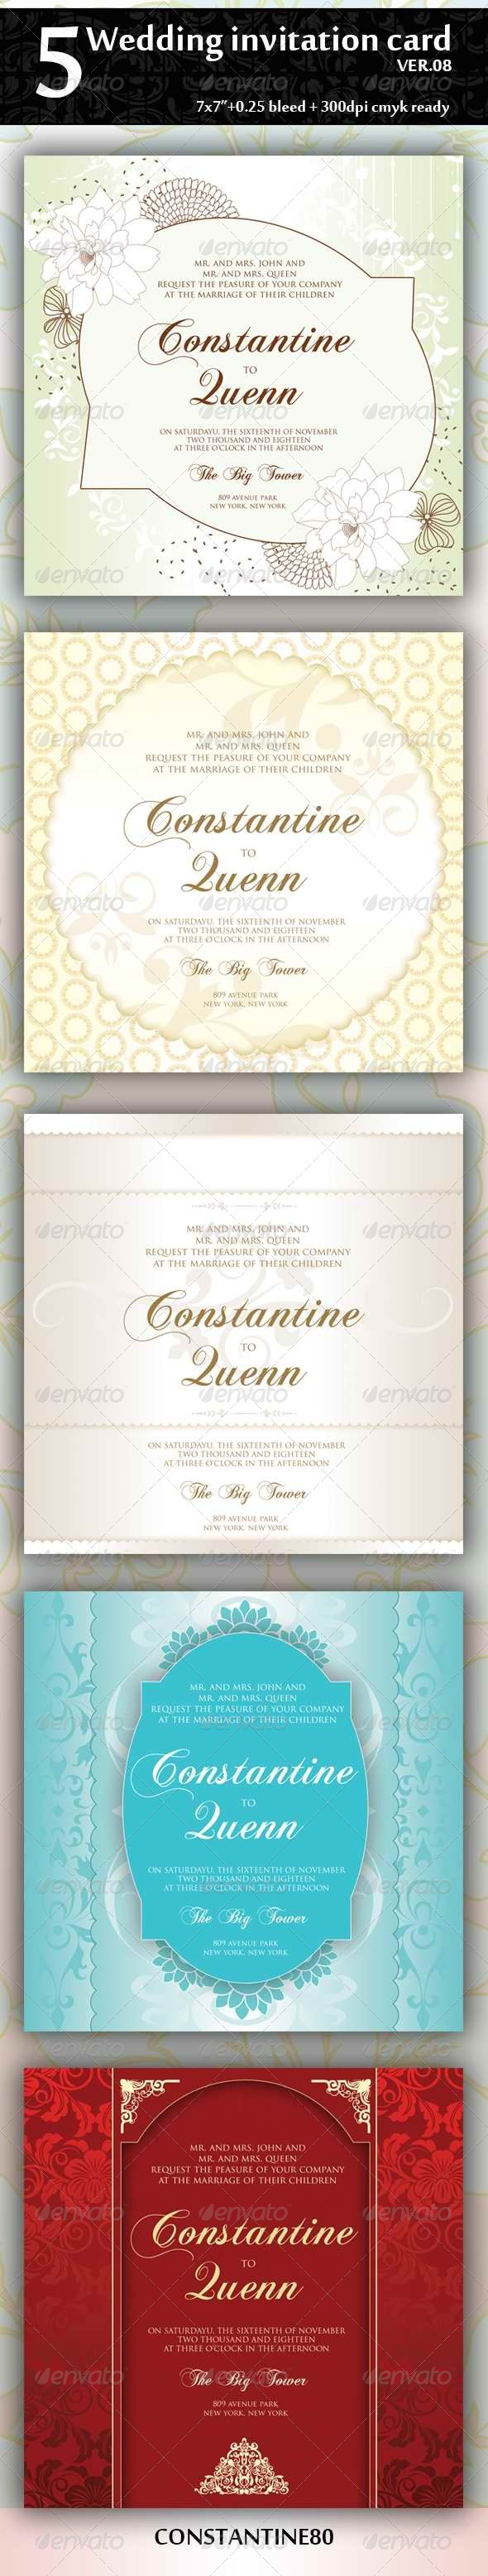 5 Wedding Invitation Card Ver08 - Weddings Cards & Invites